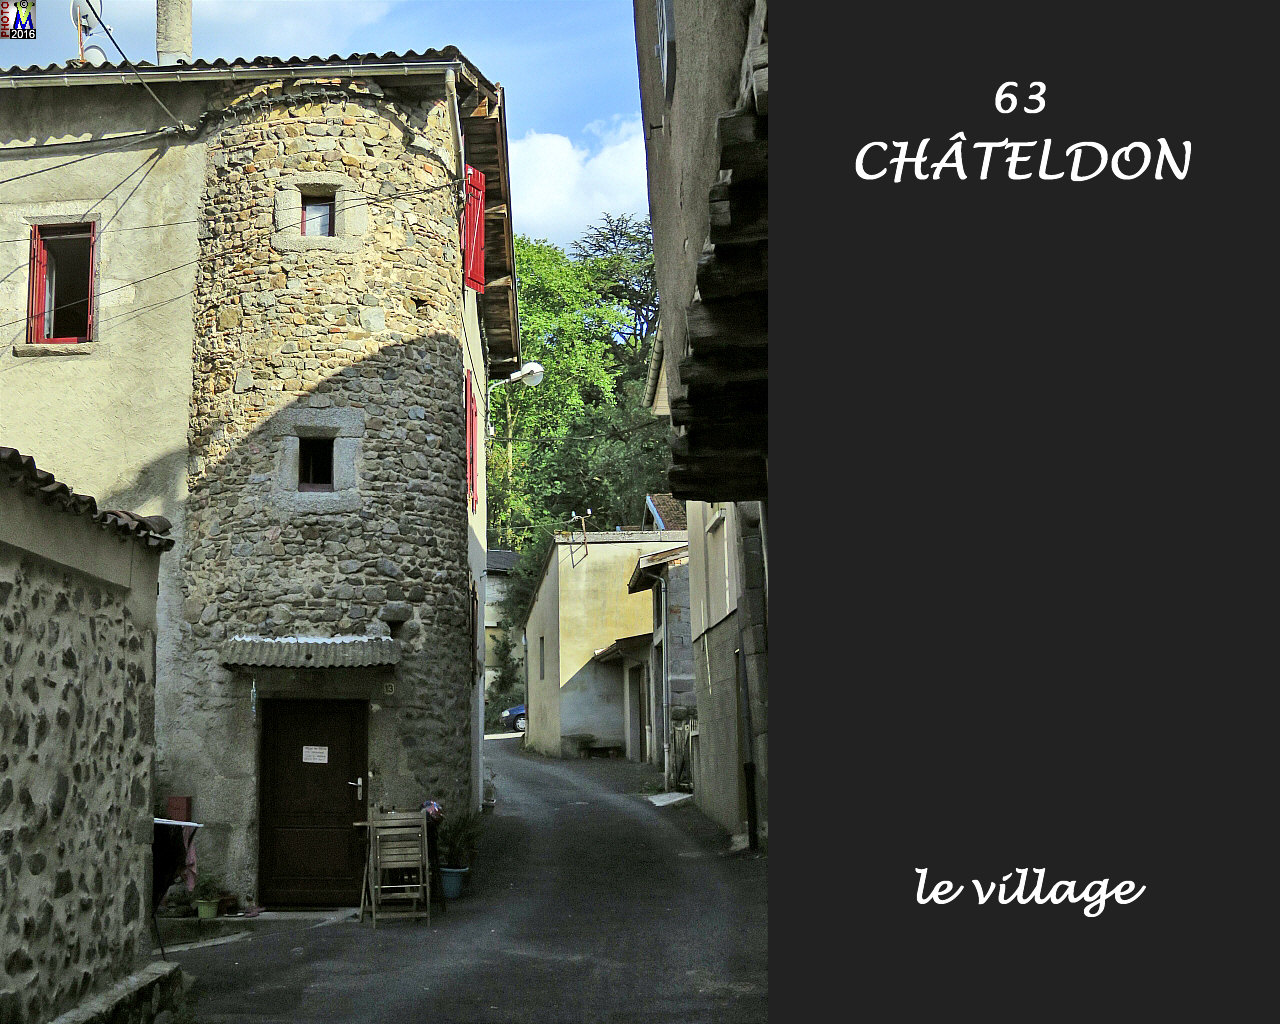 63CHATELDON_village_132.jpg